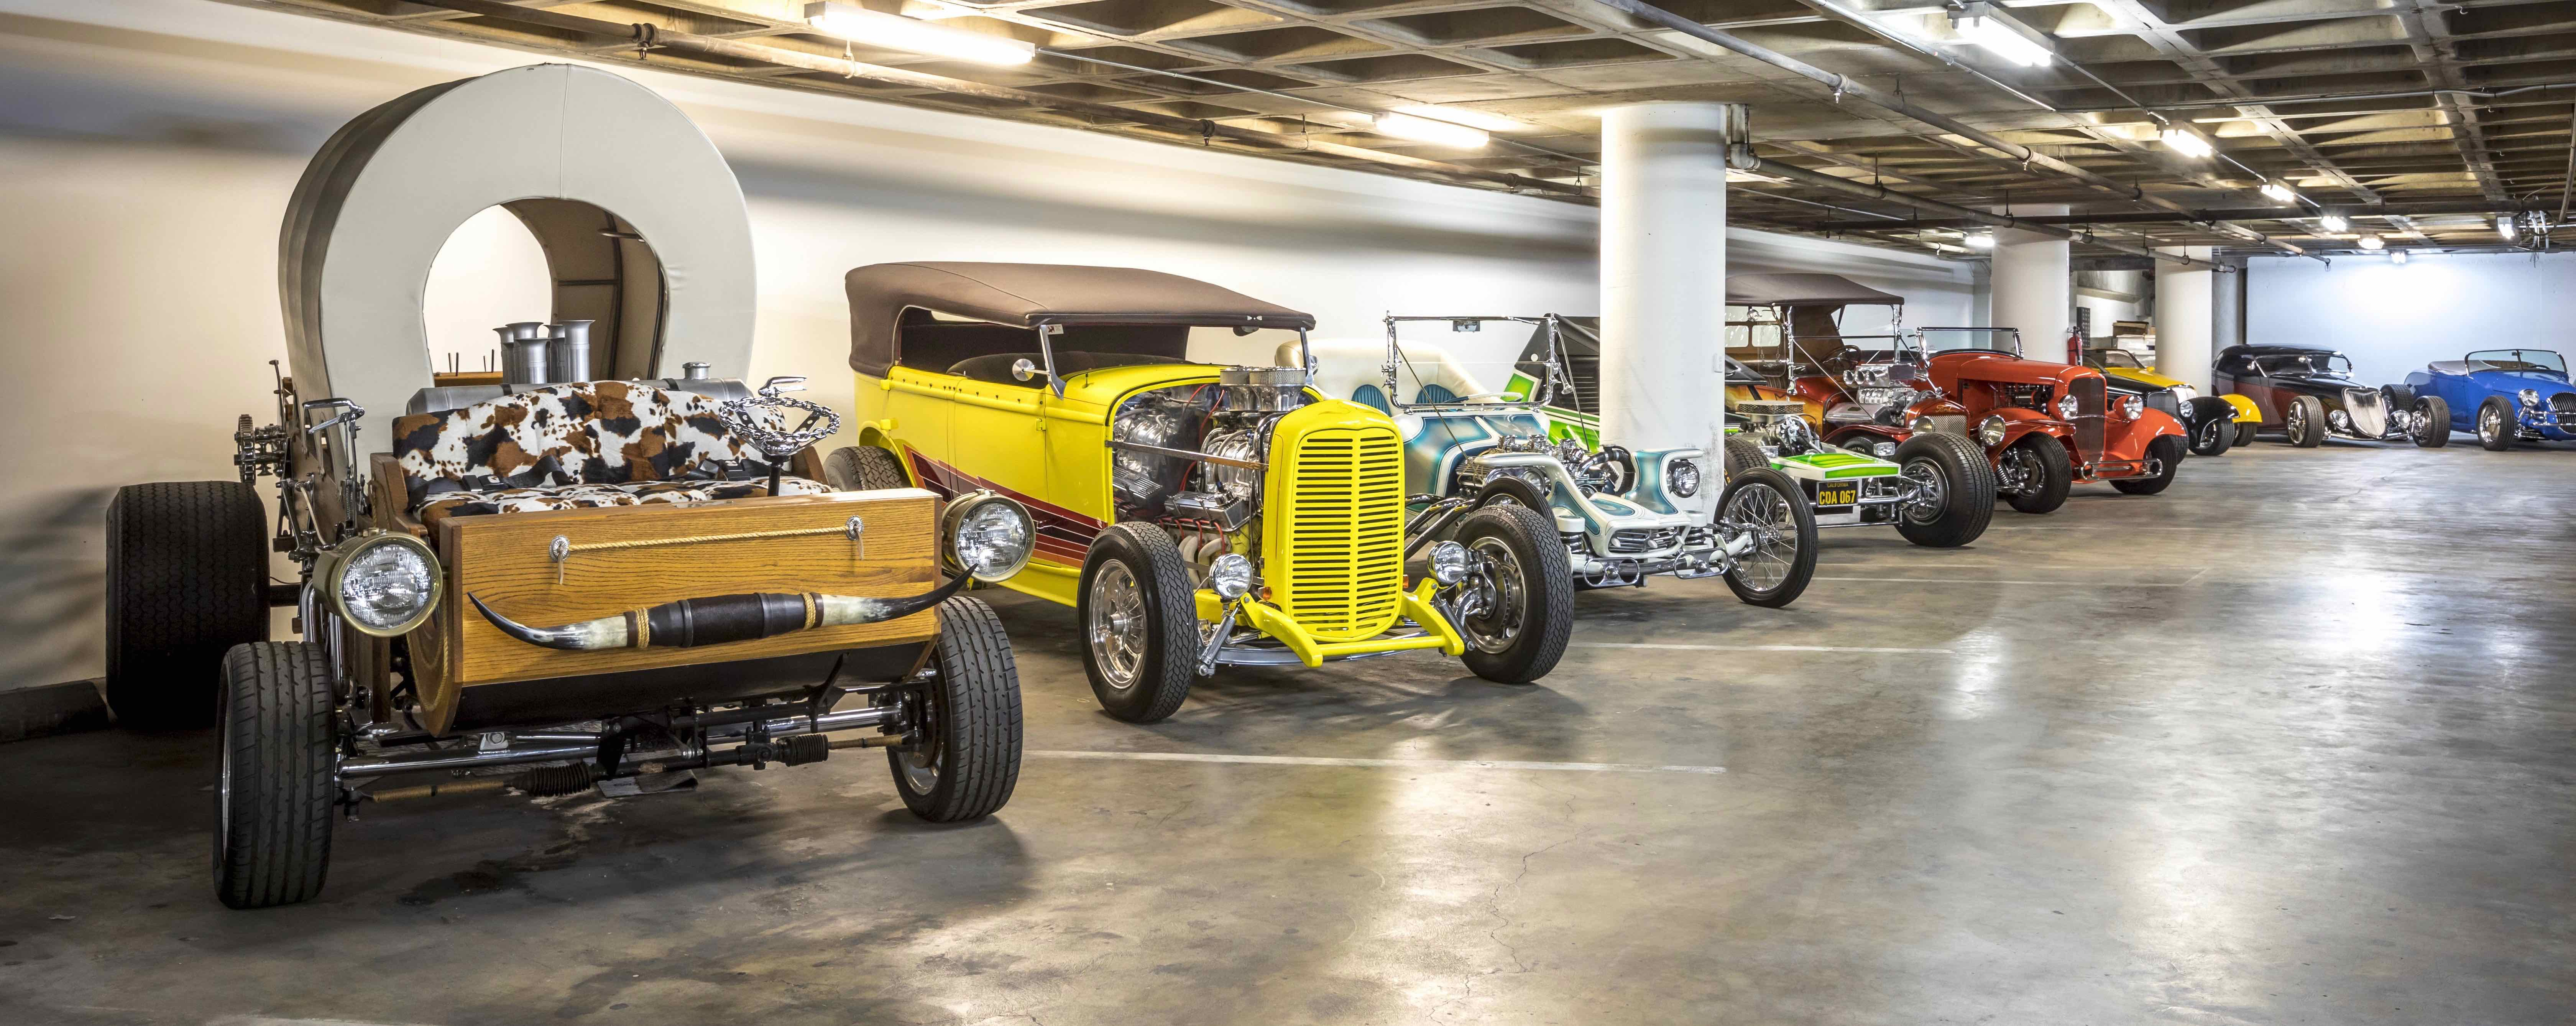 AMBR winners and other hot rods lined up for Petersen museum exhibit | Petersen photos by Ted7